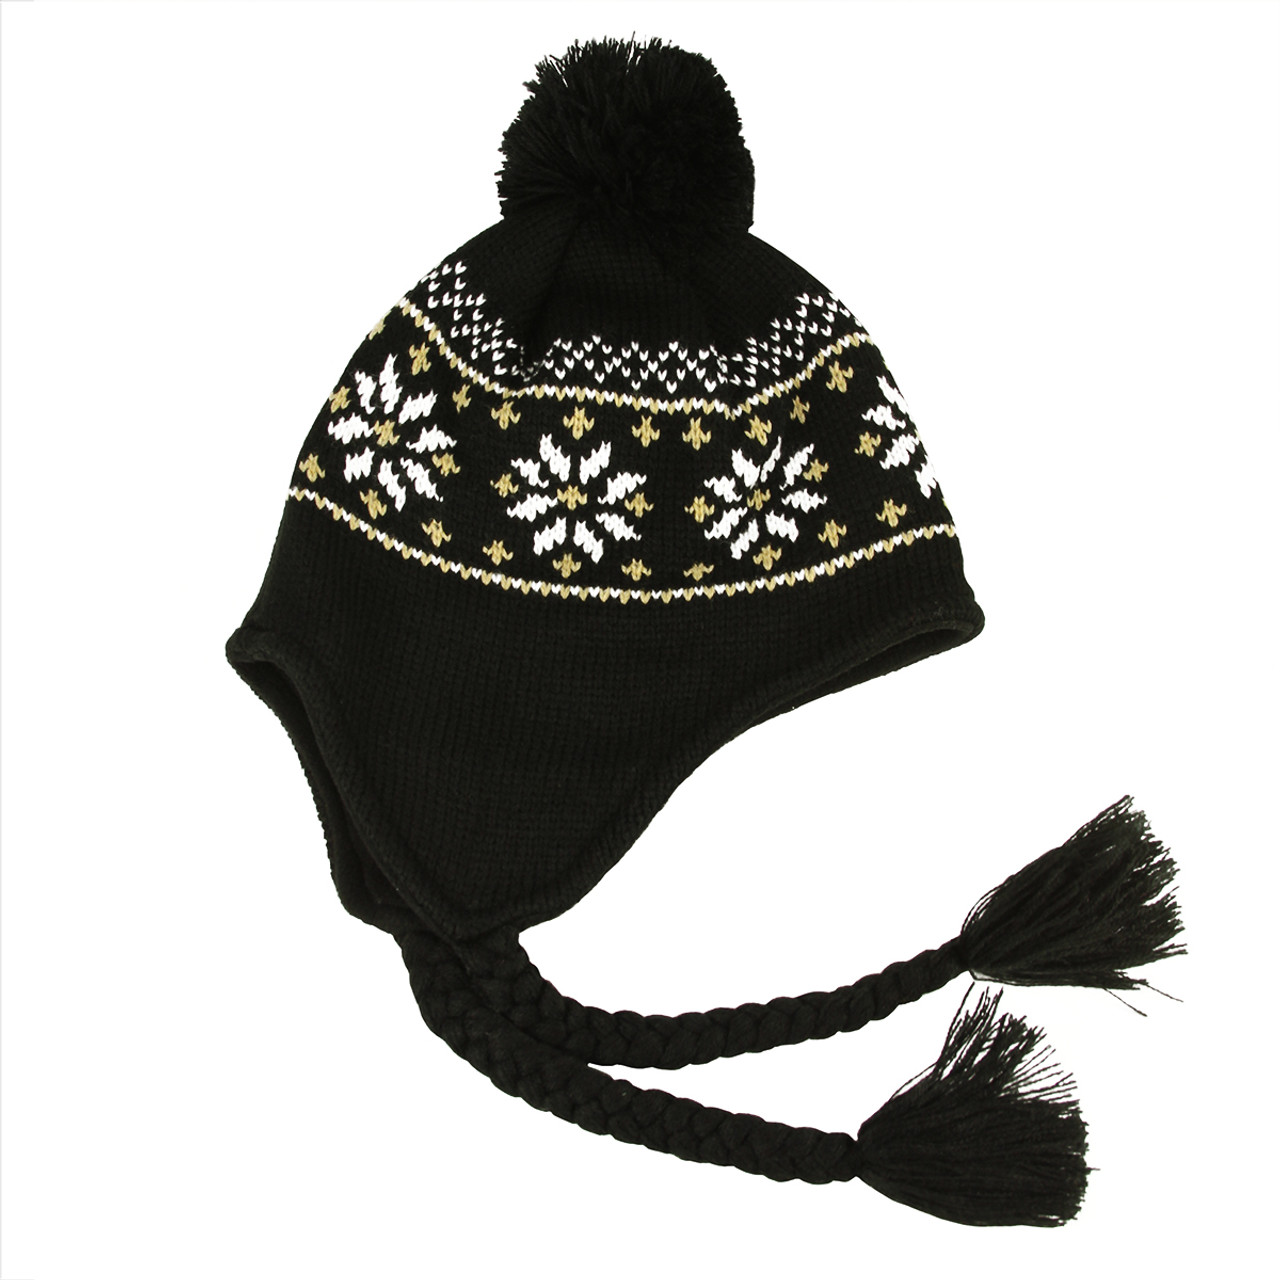 1239145306d Unisex Black Jacquard Knit Winter Hat with Ear Flaps - One Size ...